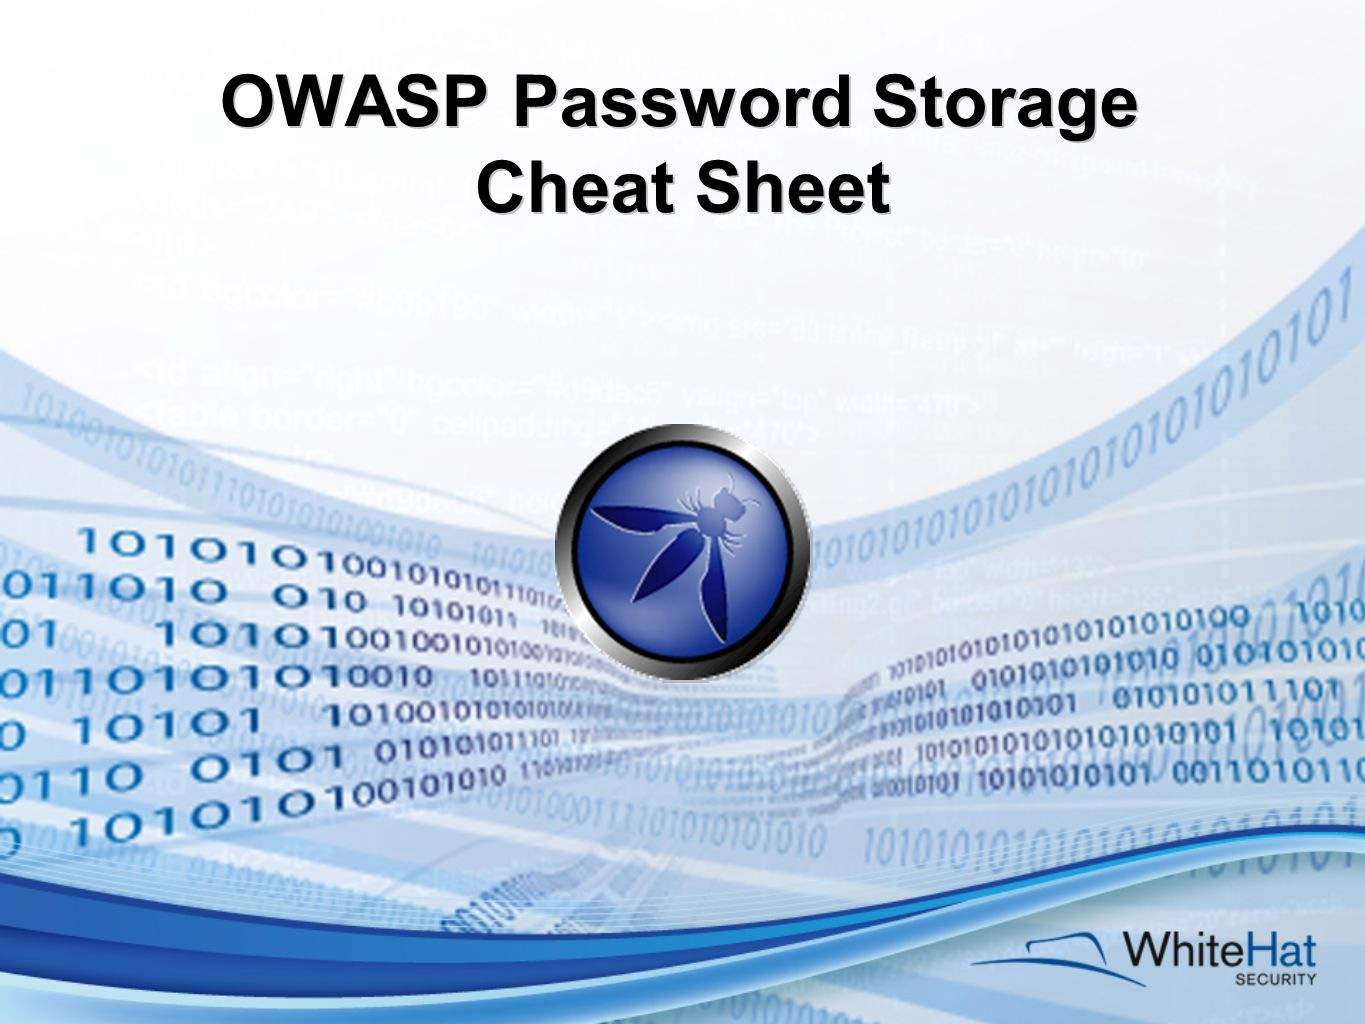 OWASP Password Storage Cheat Sheet